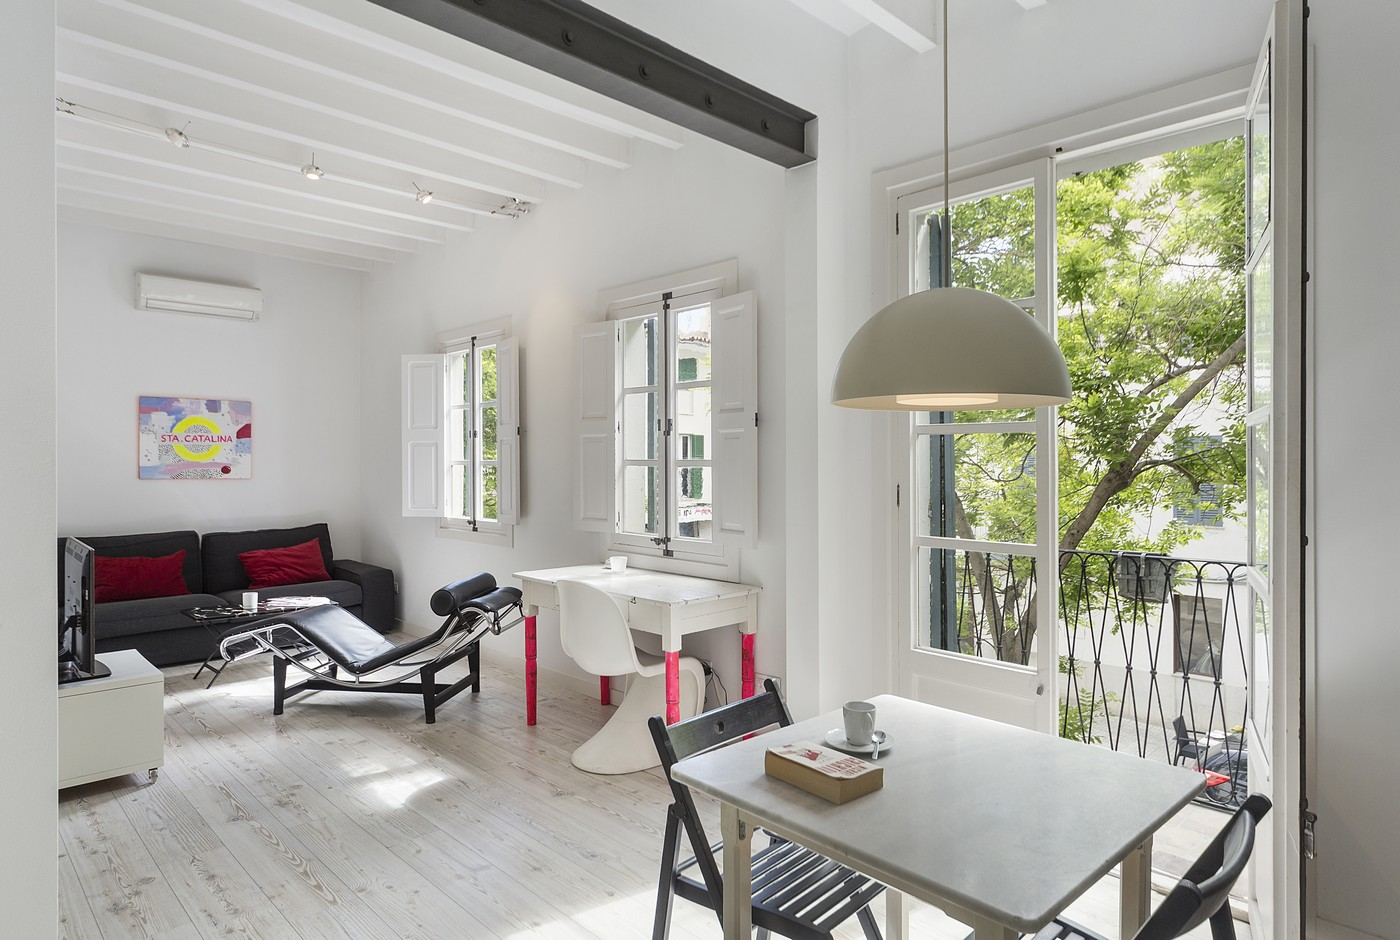 Single Family Home for Sale at Light Studio Apartment for sale in Santa Catalina Palma De Mallorca, Balearic Islands, Spain